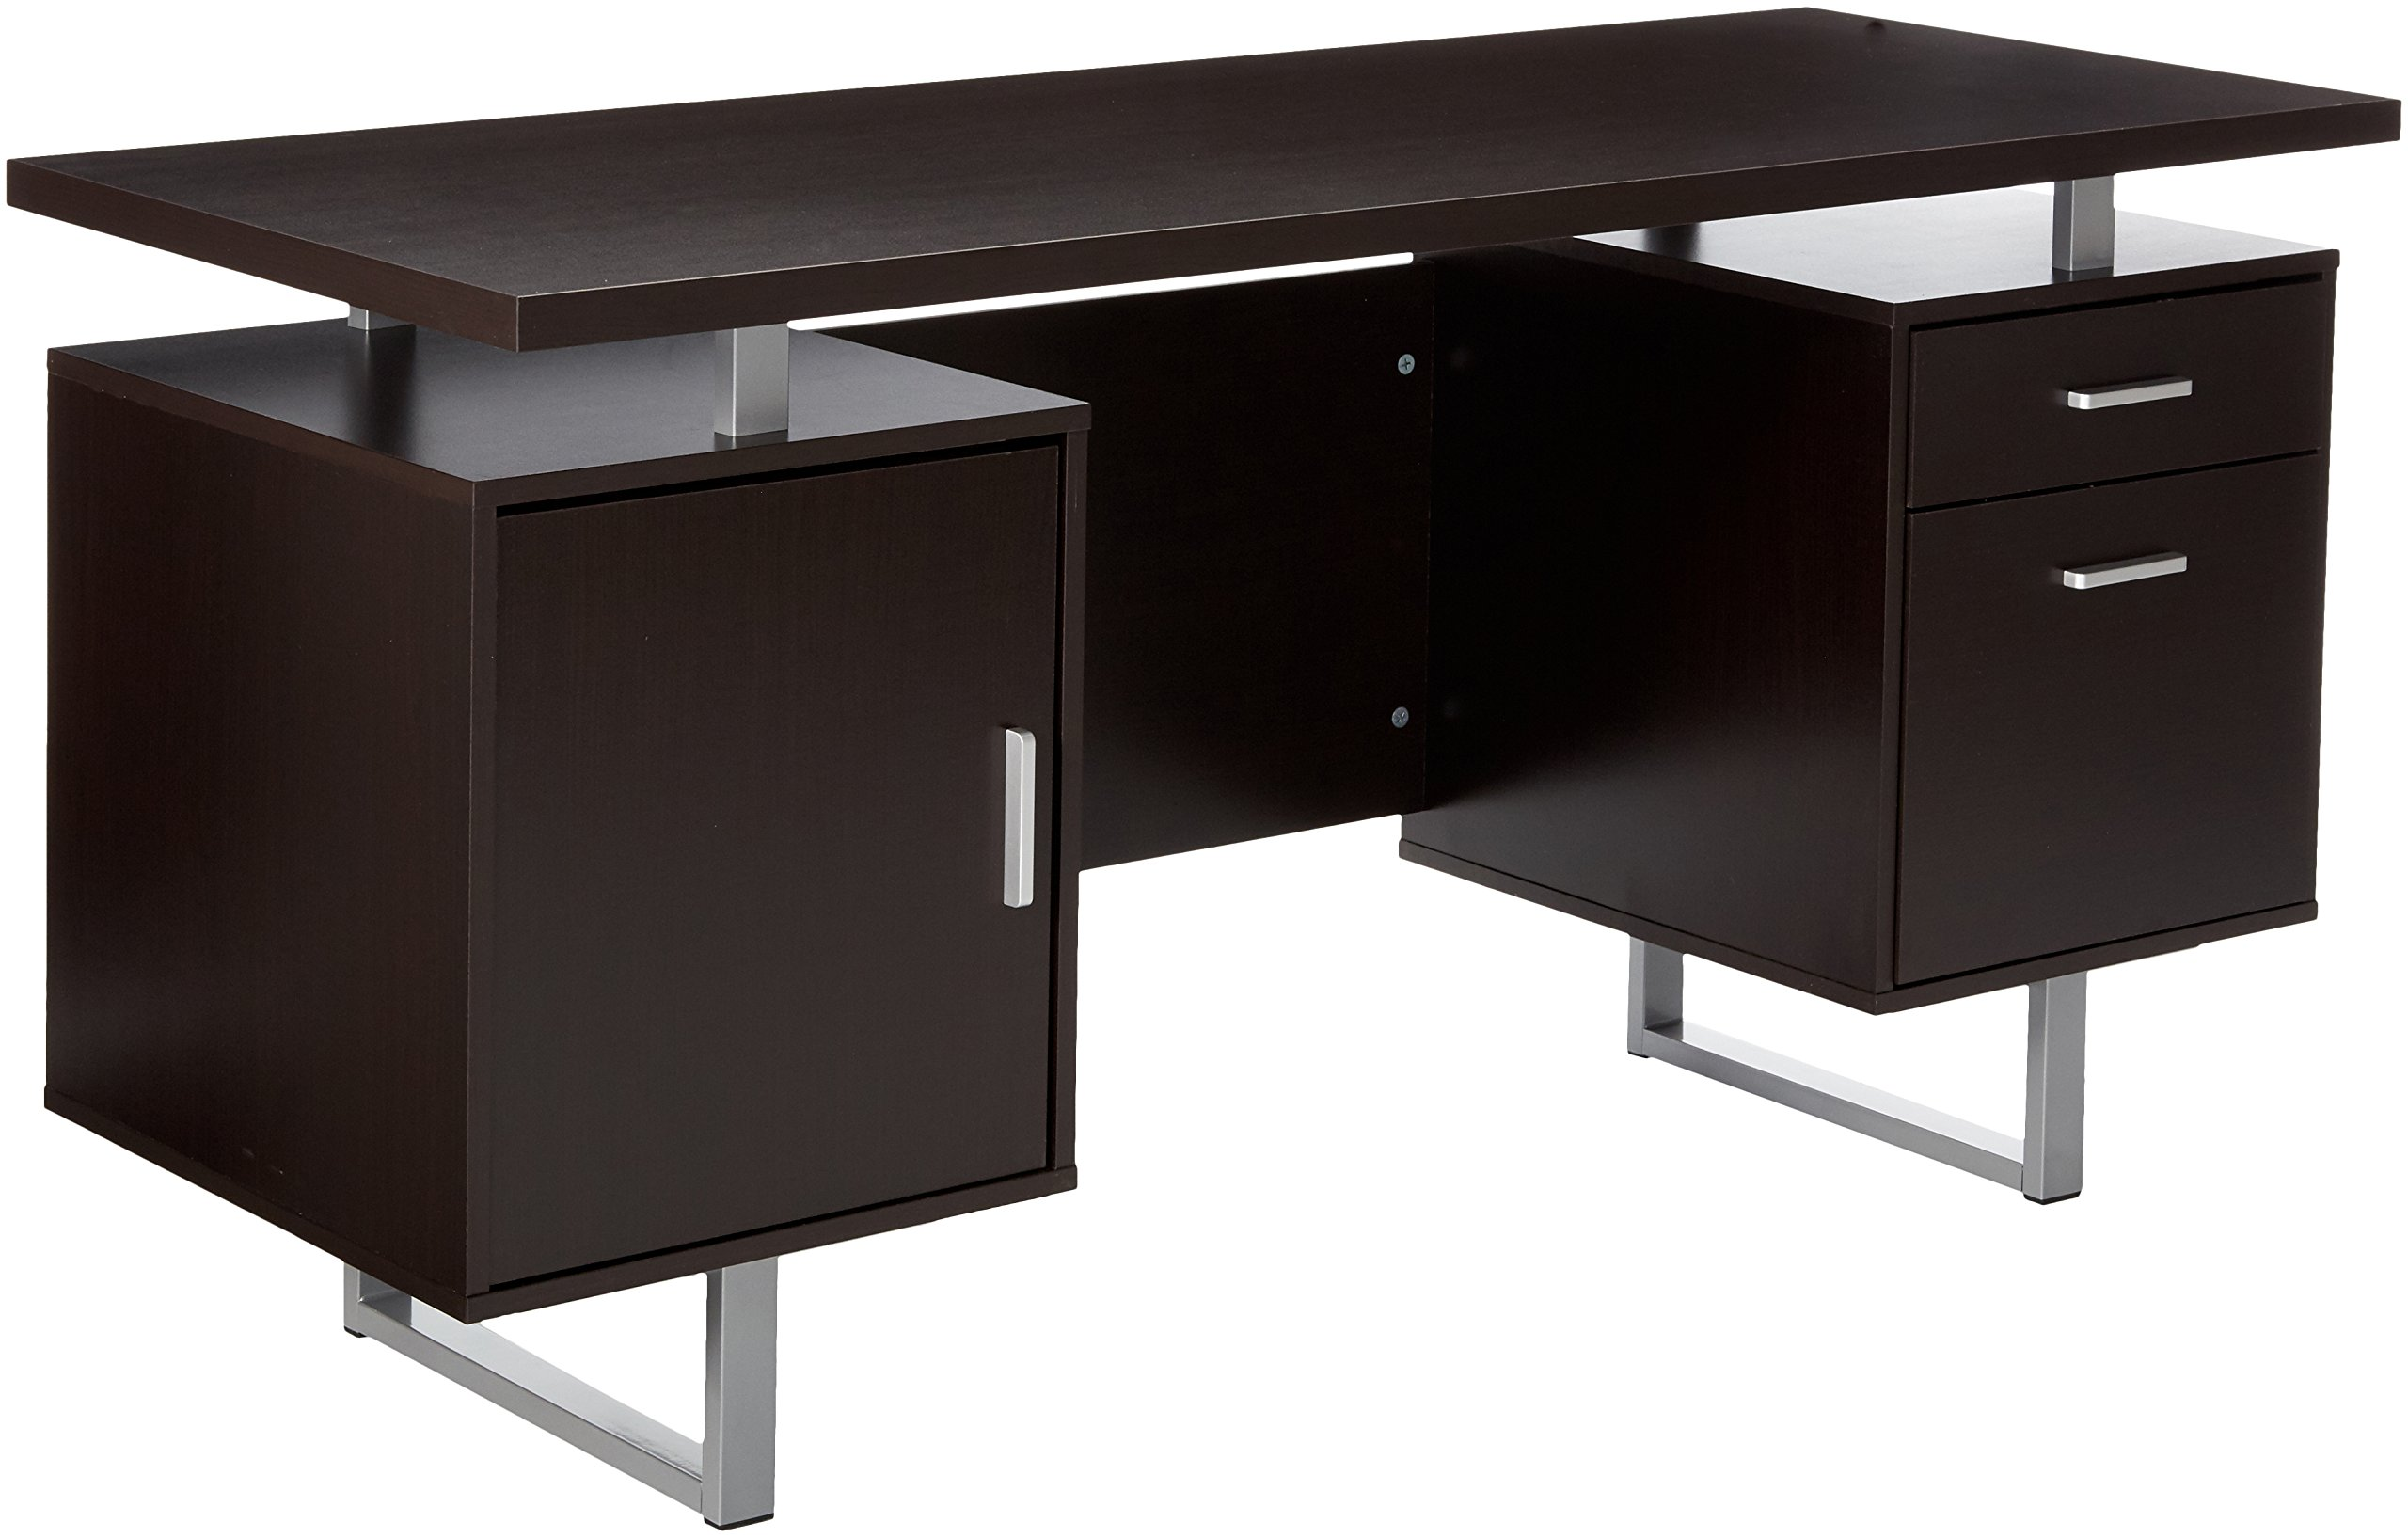 Glavan Double Pedestal Office Desk with Metal Sled Legs and Floating Desk Top Cappuccino by Coaster Home Furnishings